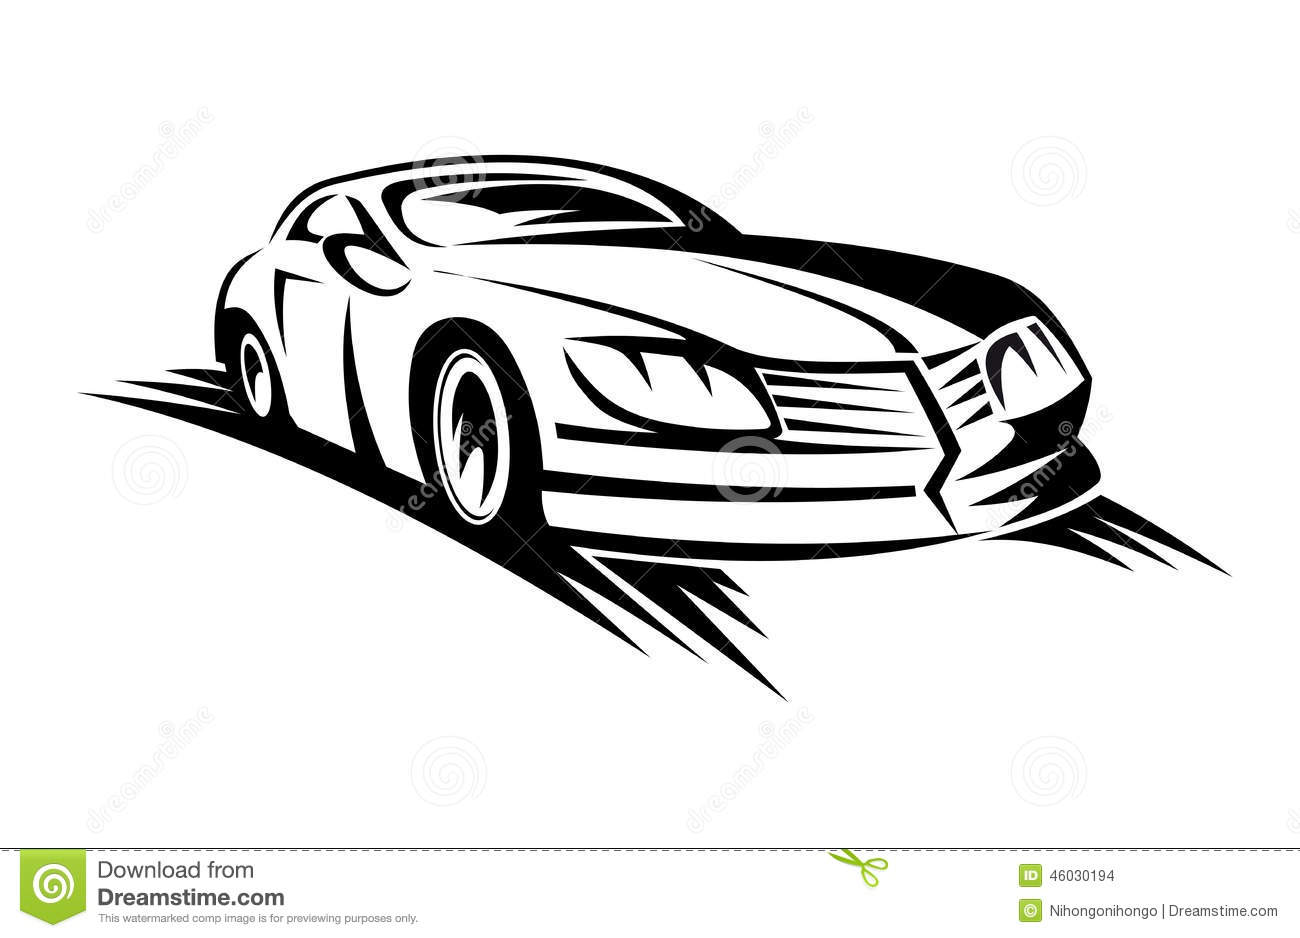 Driving Fast Clipart Fast Car. Moving Ca-Driving Fast Clipart Fast Car. Moving car-3